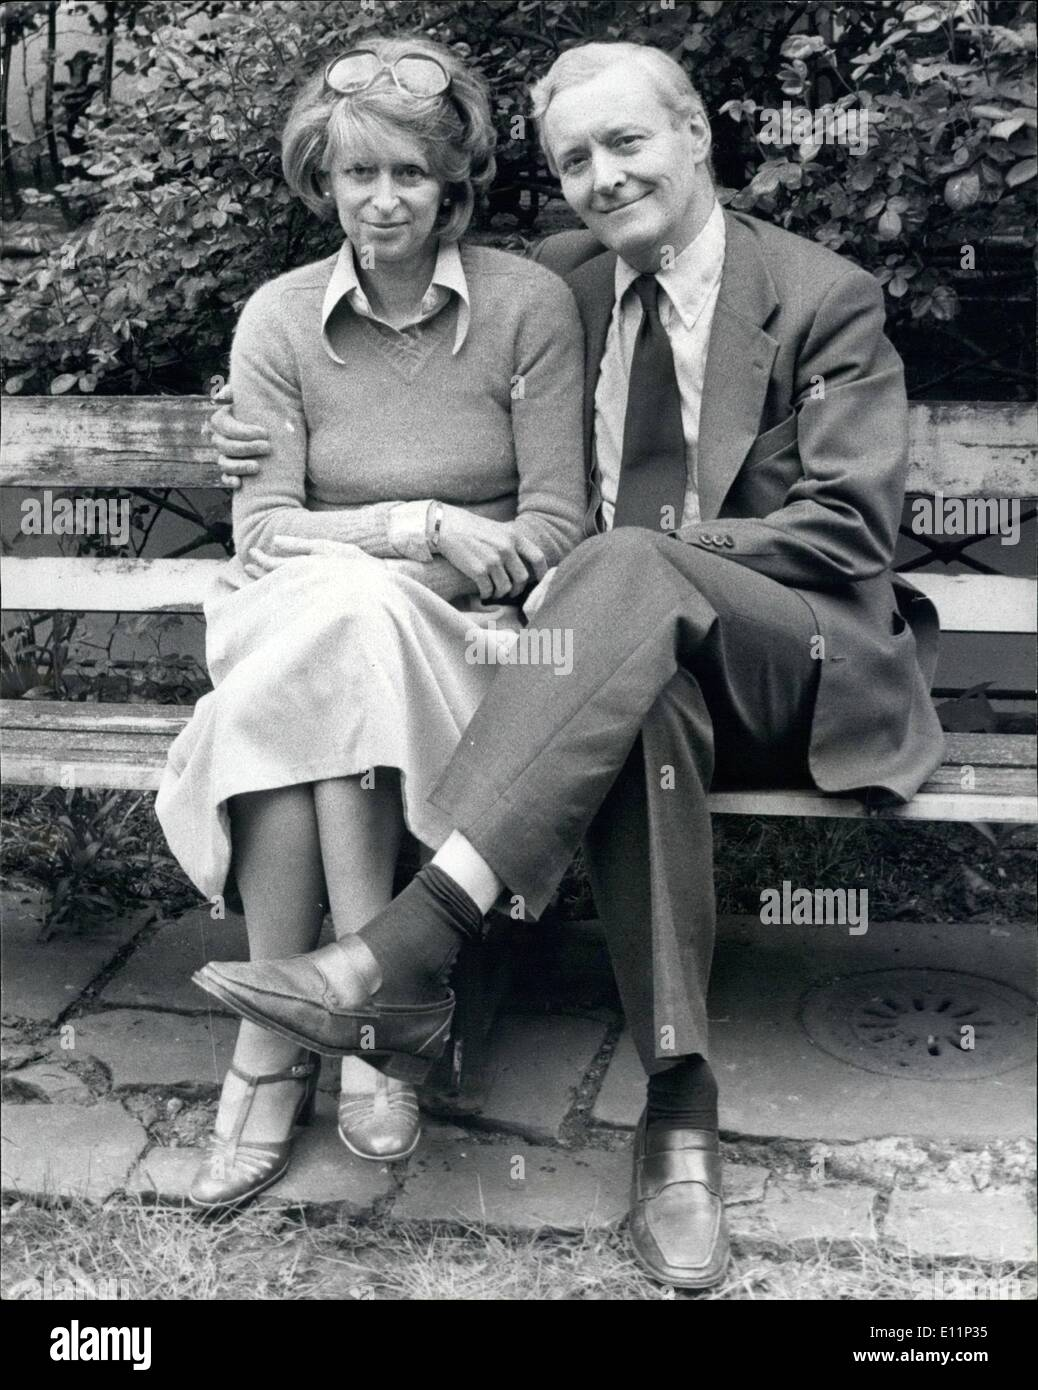 May 05, 1979 - Mr. Tony Benn will not serve in the shadow cabinet.: Mr Tony Benn announced yesterday that he will - Stock Image